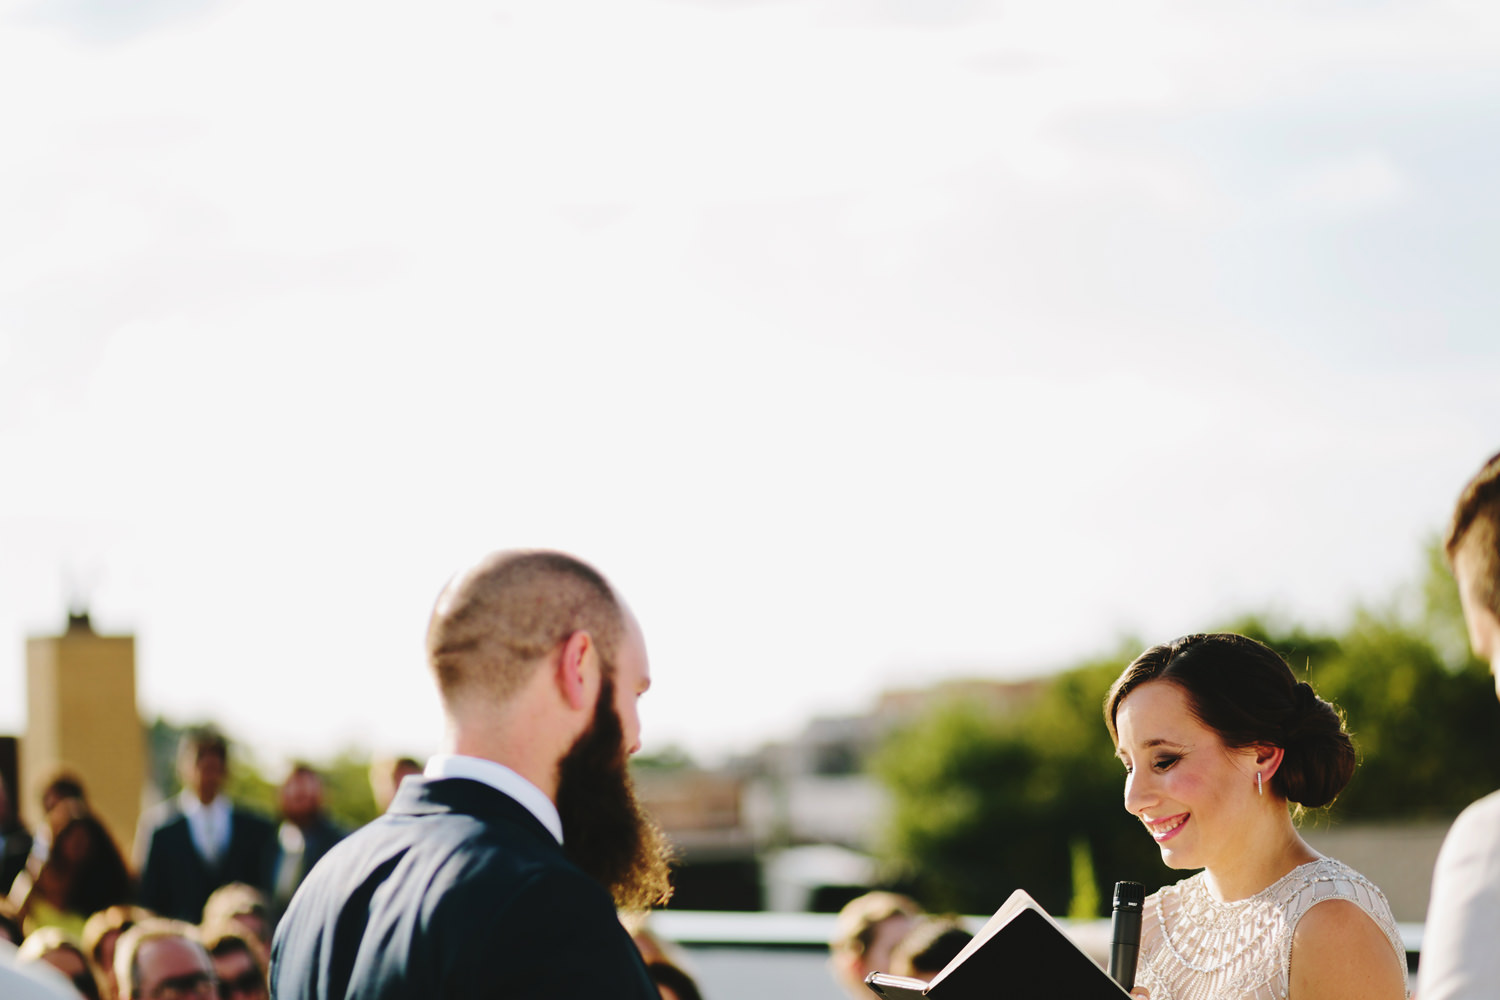 057-Melbourne_Wedding_Photographer_Jonathan_Ong_Best2015.jpg